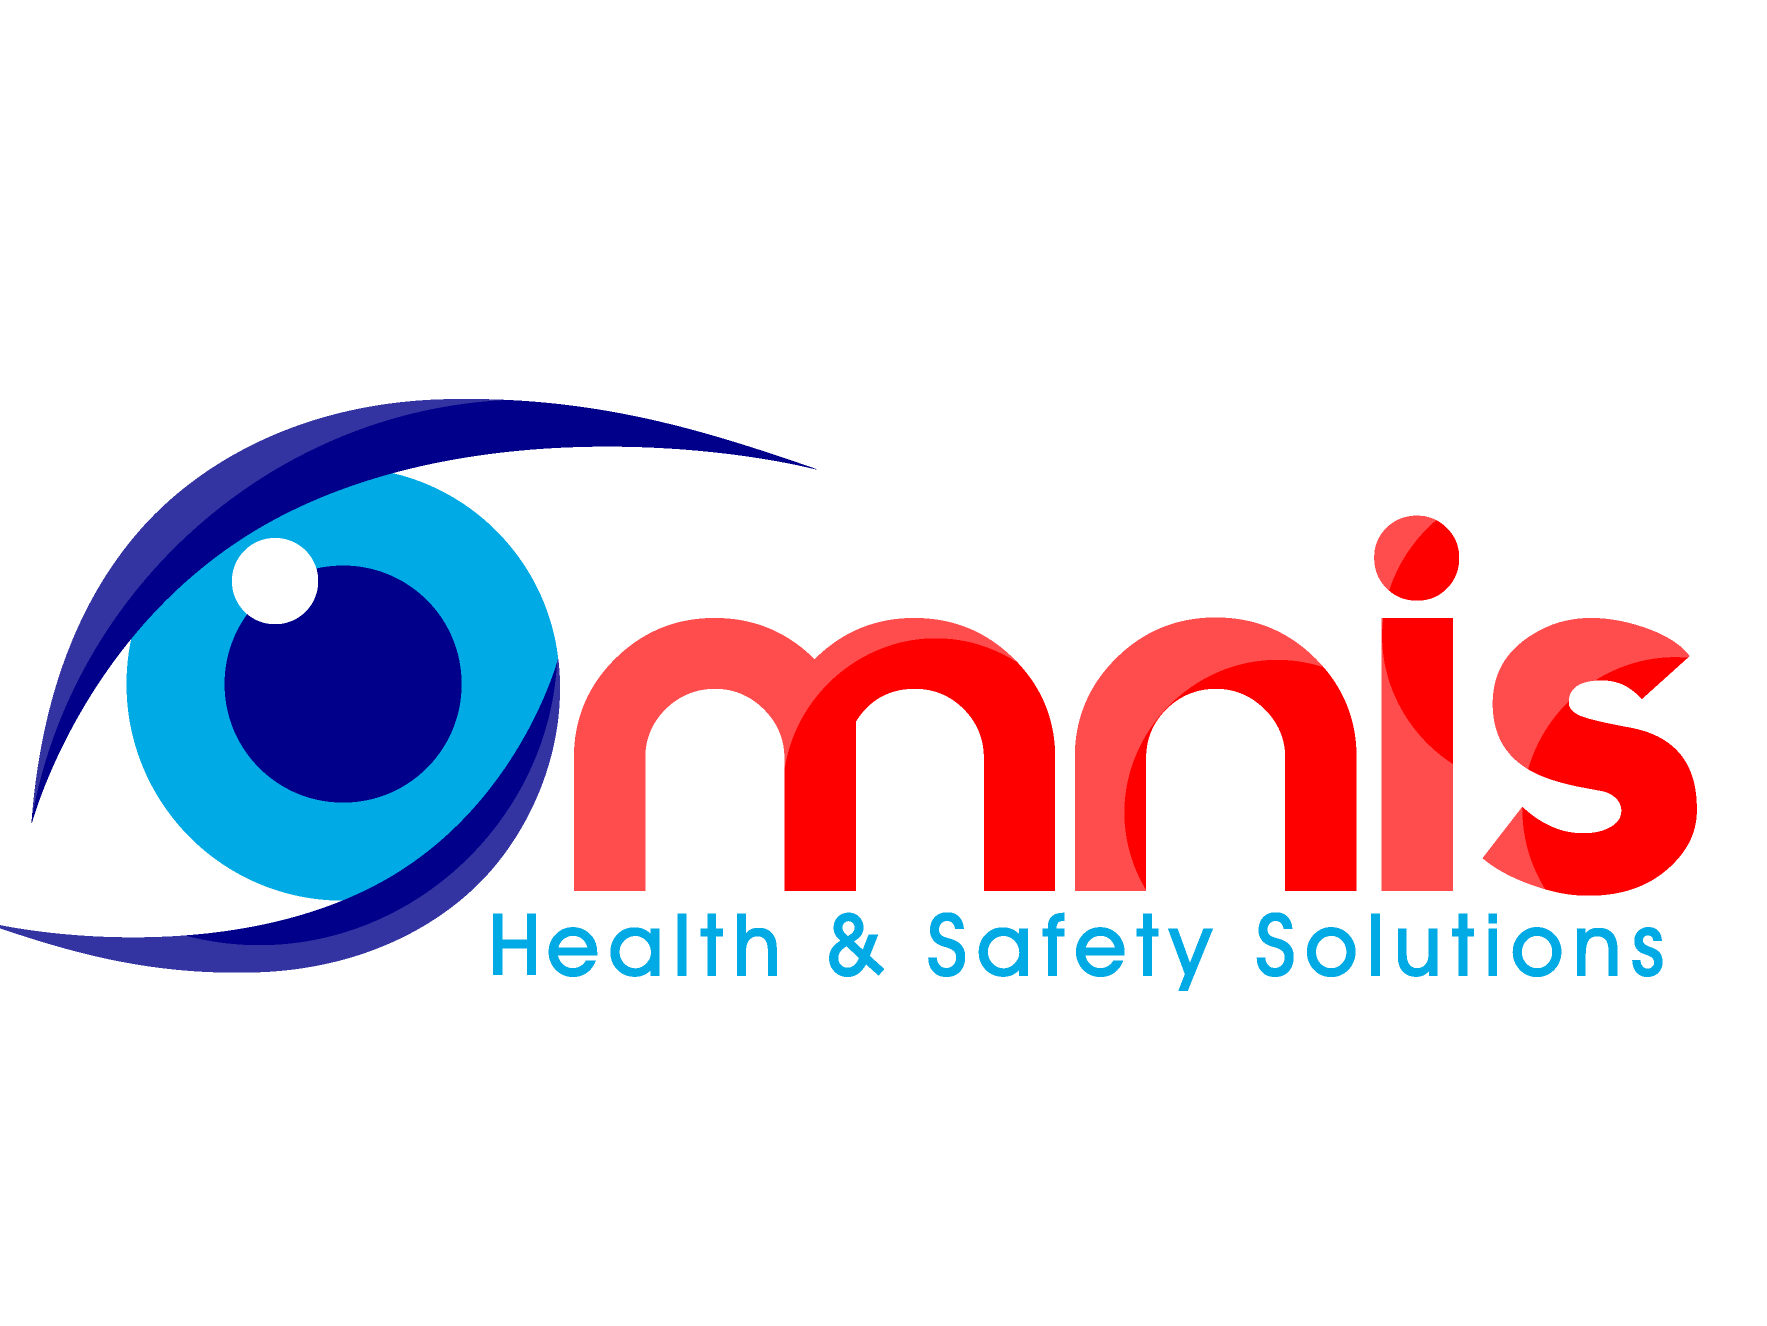 Omnis Health & Safety Solutions -